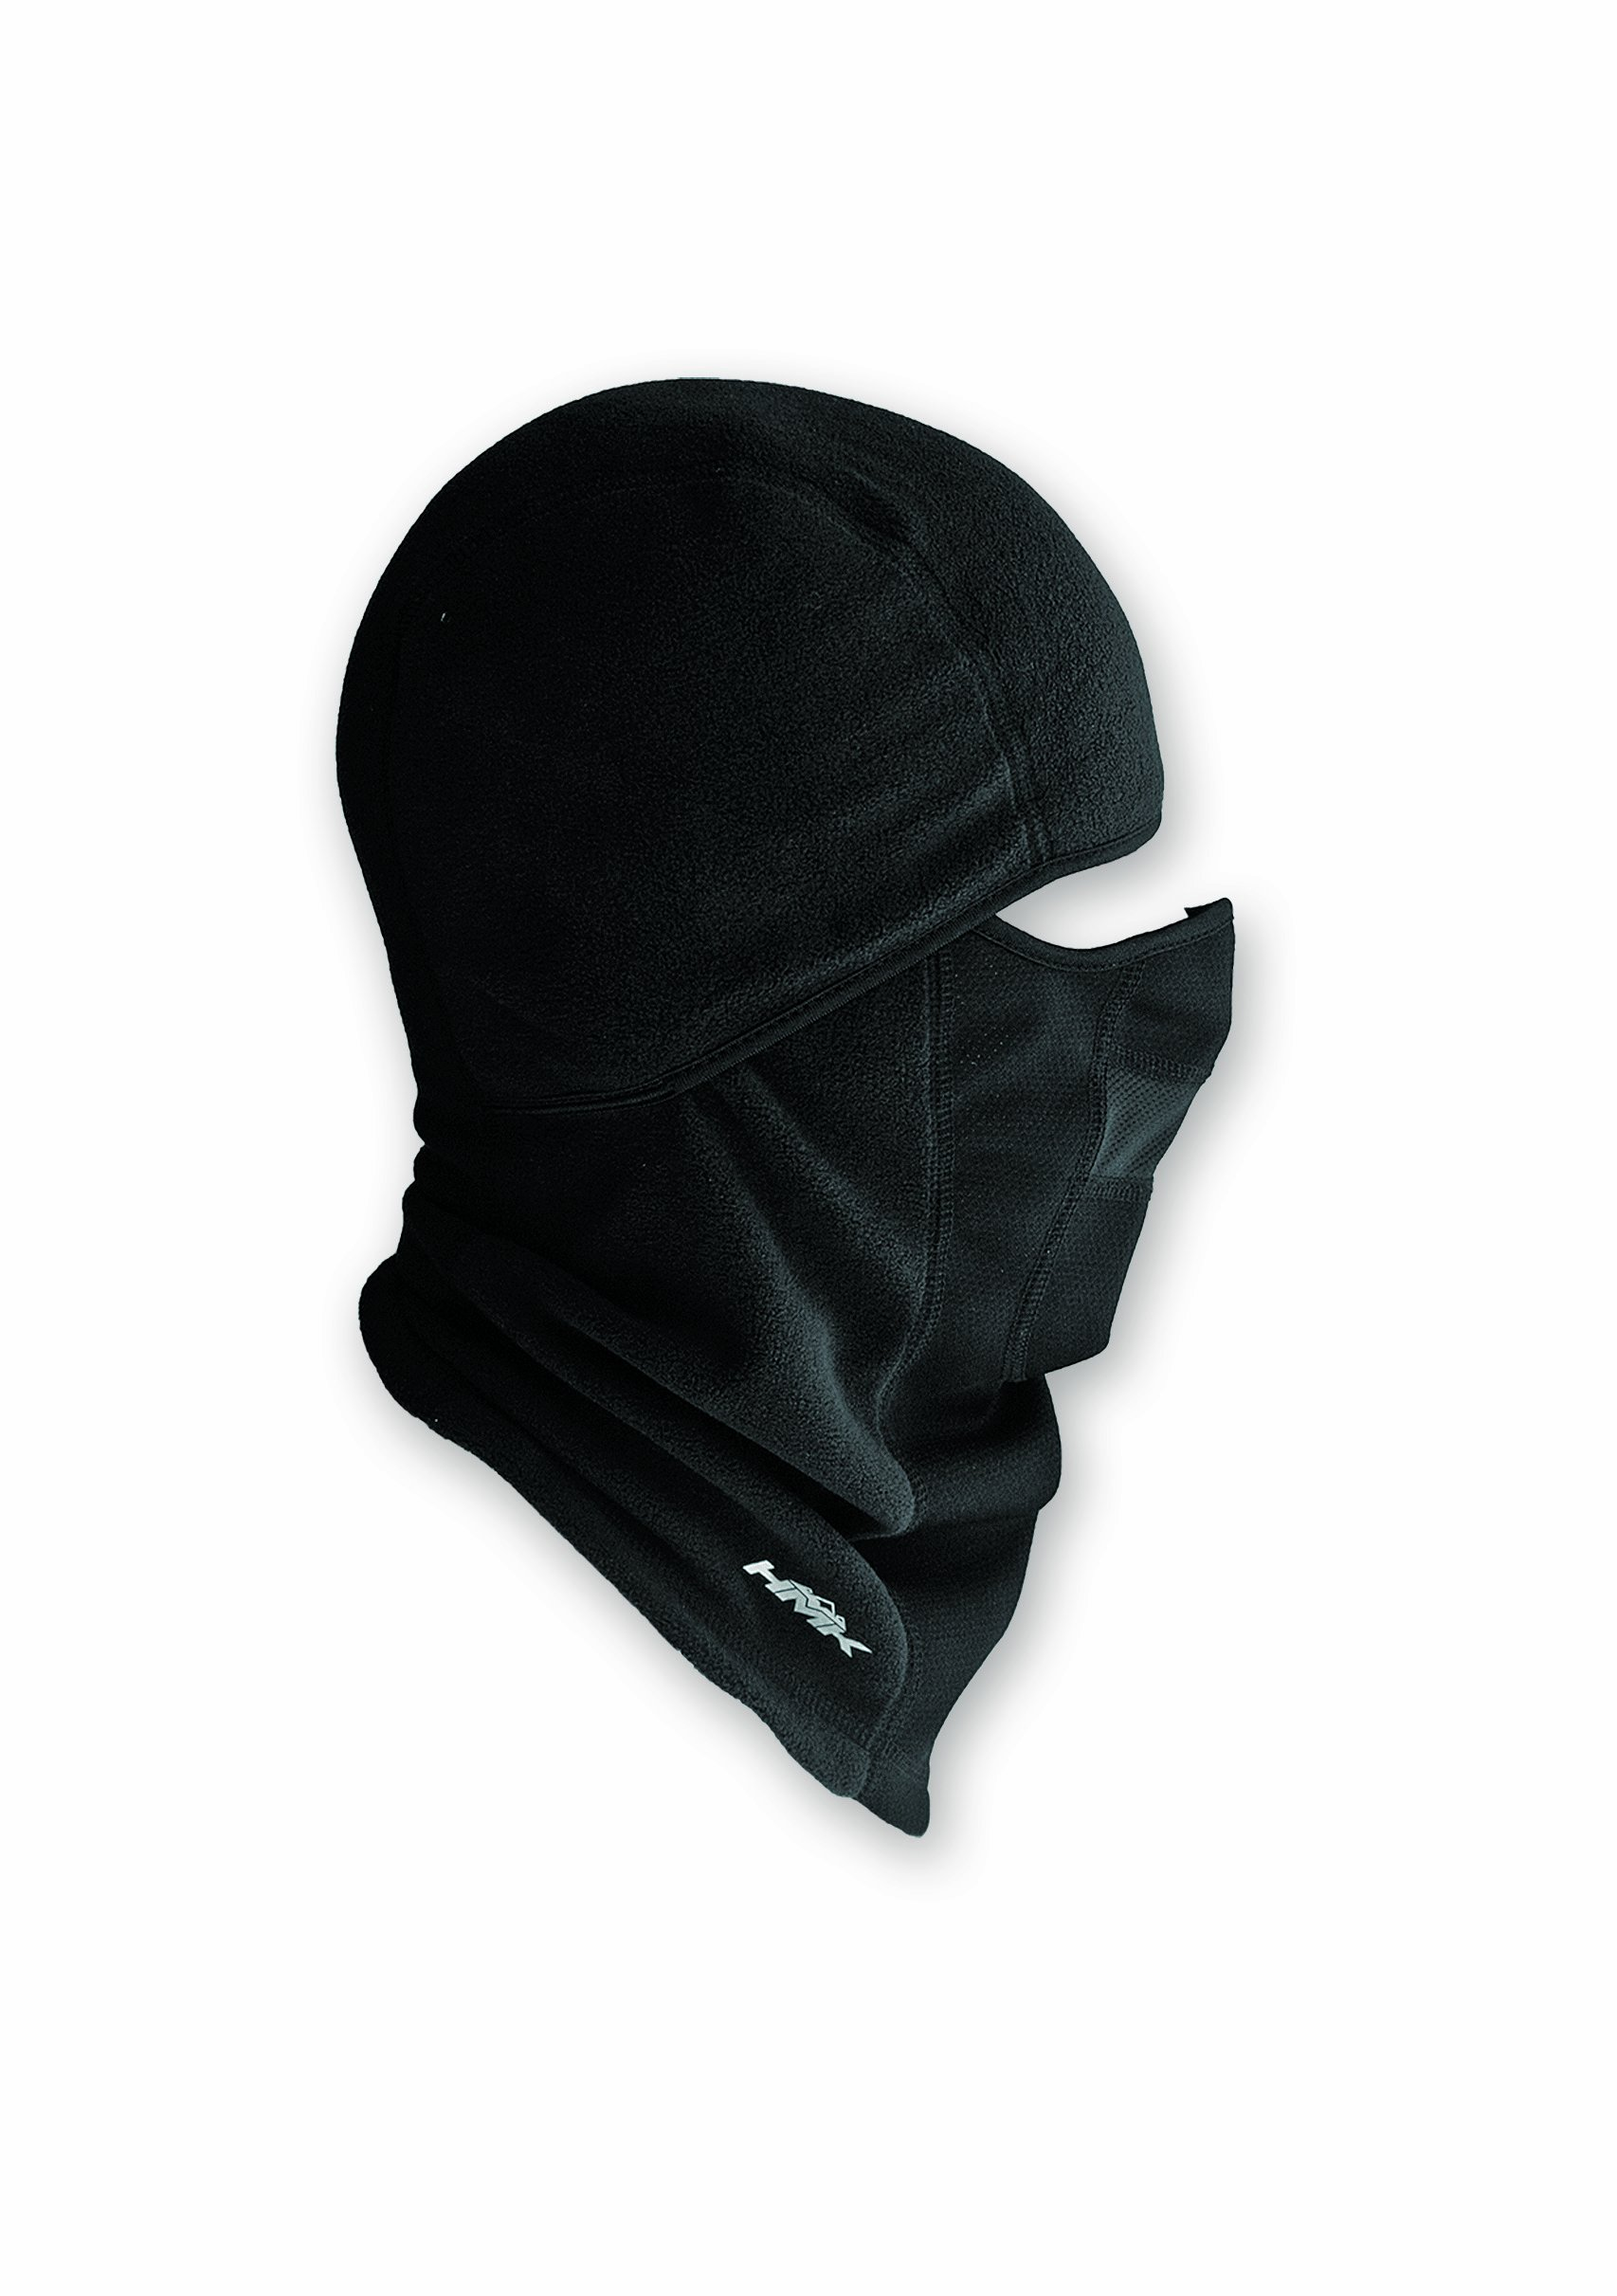 HMK Exposure Balaclava (Black,Large/ X-Large)